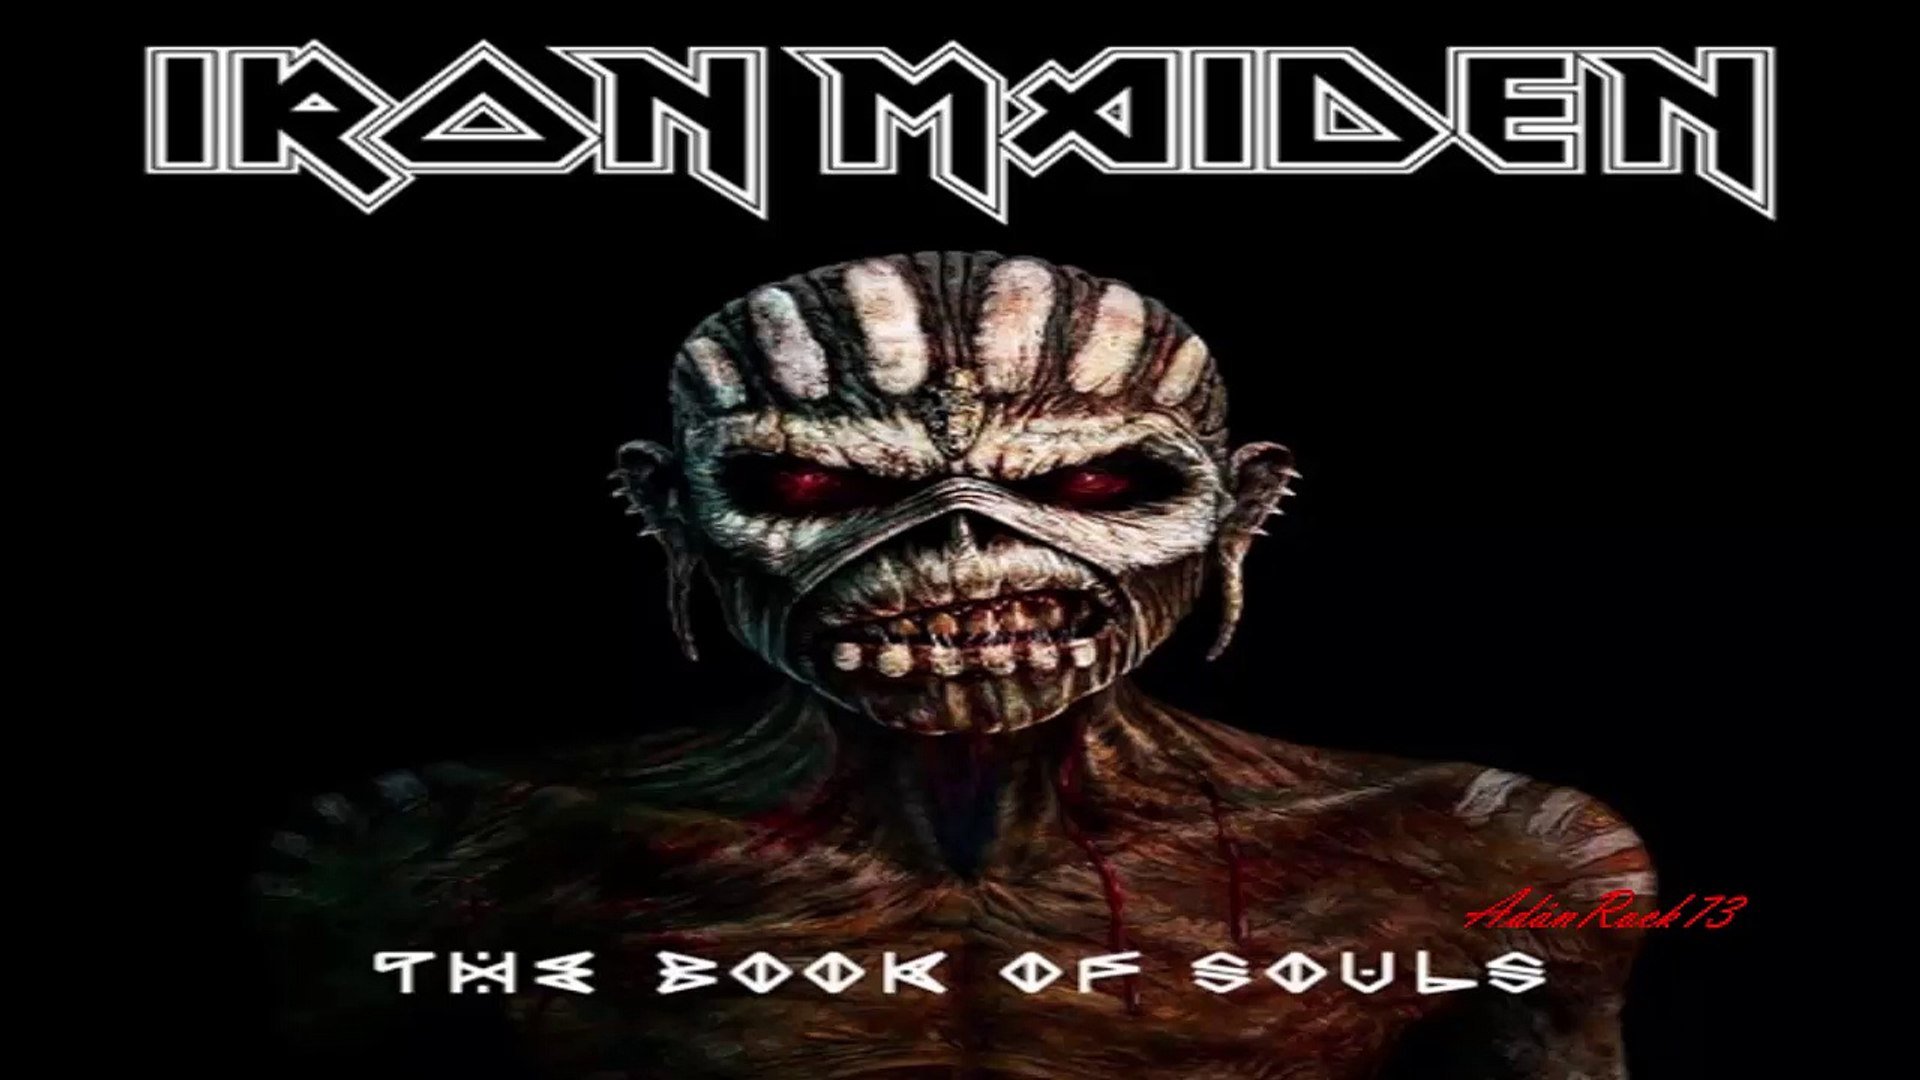 Iron Maiden Empire Of The Clouds The Book Of Souls 2015